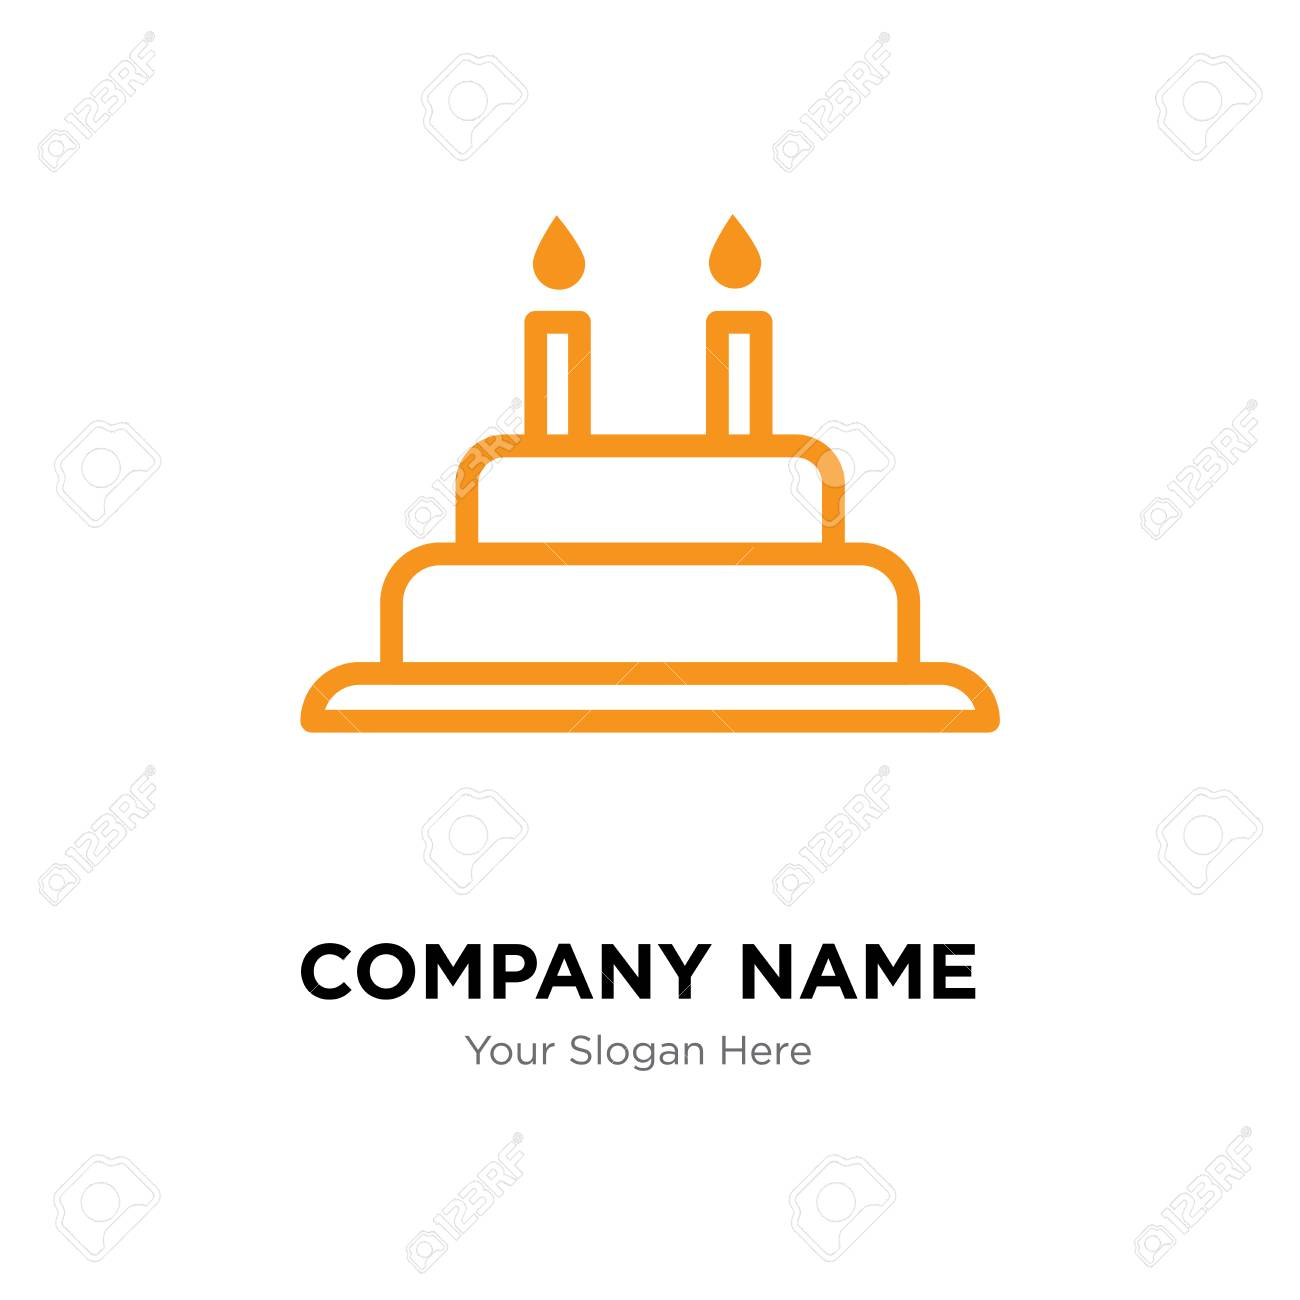 Cake With Candles Company Logo Design Template Business Corporate